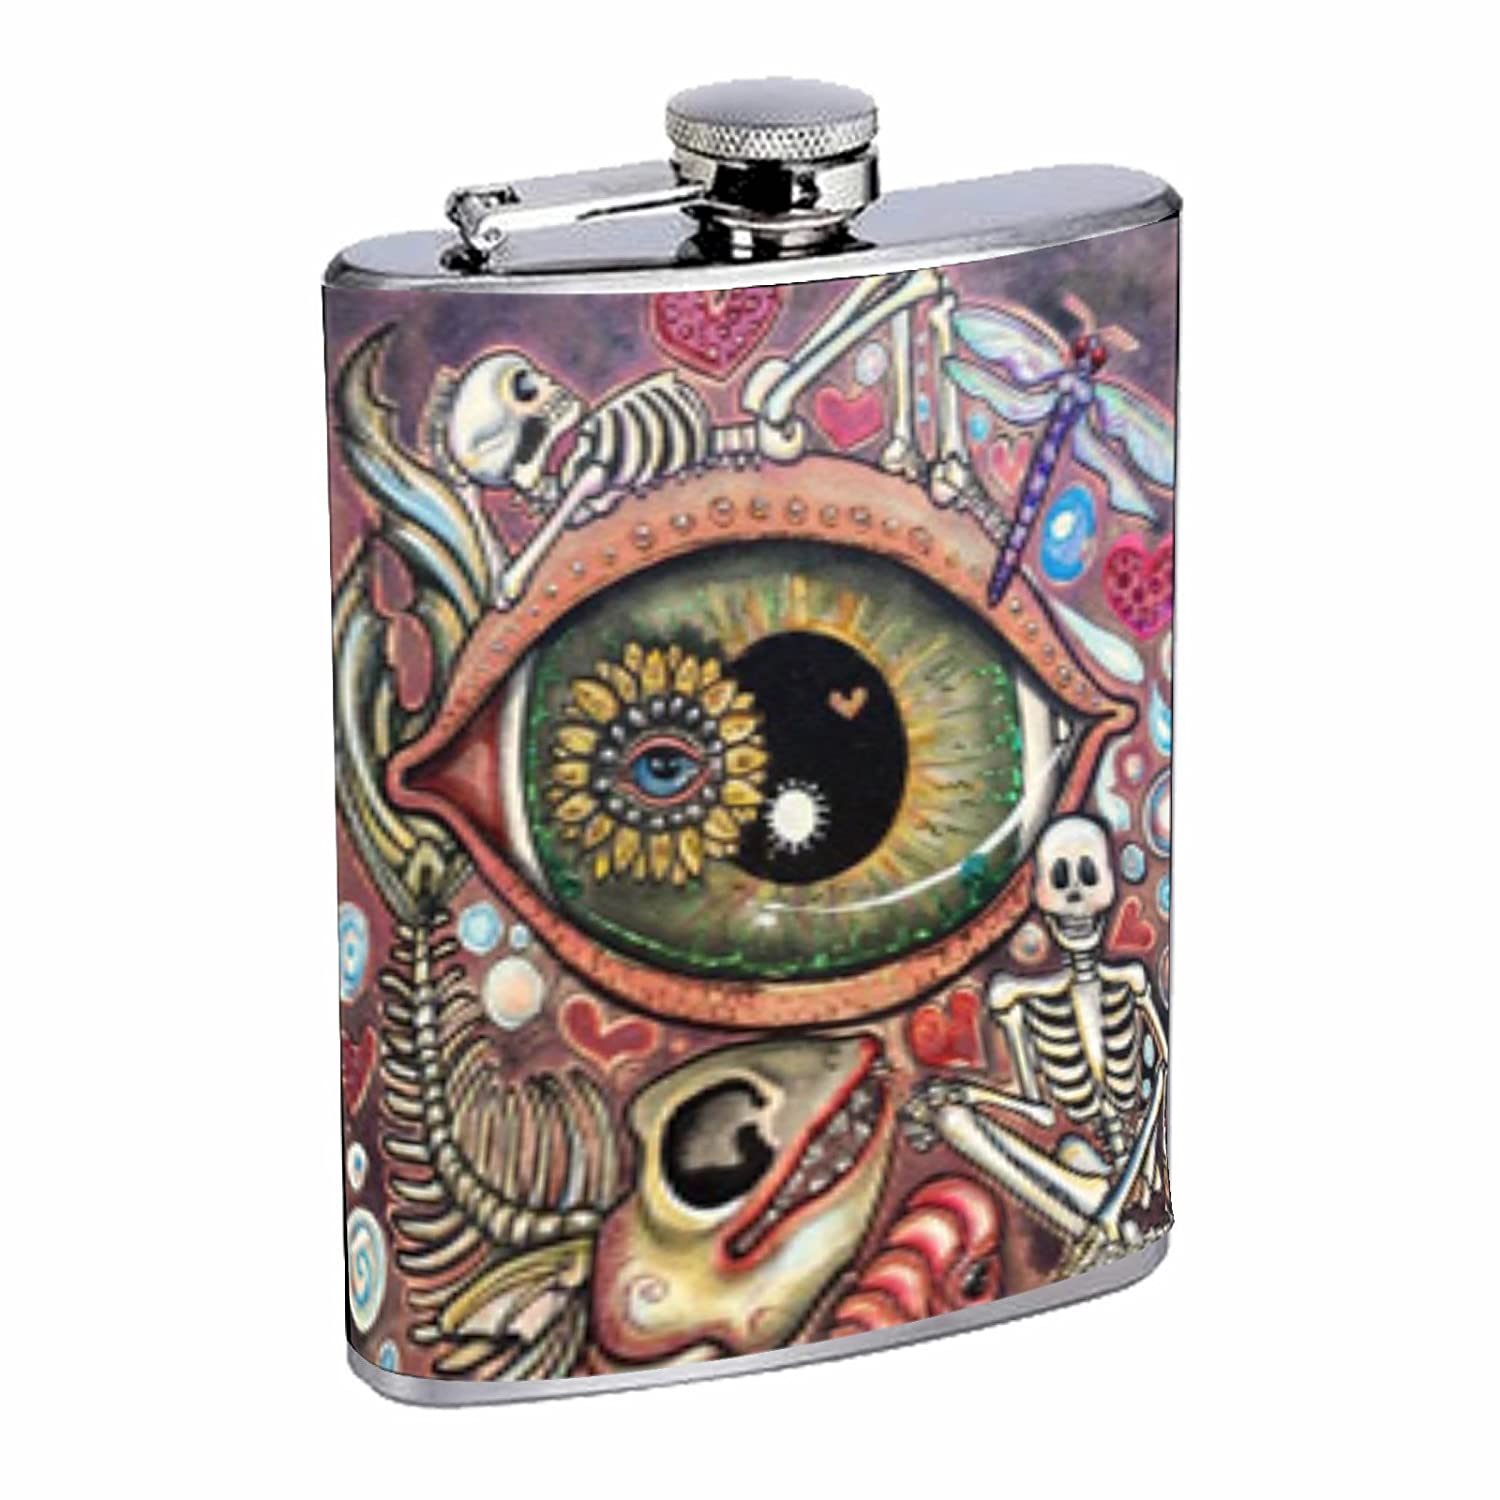 Have Fun Gifts Elegant Fine Touch Leak Proof Small Primo 18//8 Stainless Steel 8 OZ Flask with Personality Design with Octopus Skull Cat Trippy